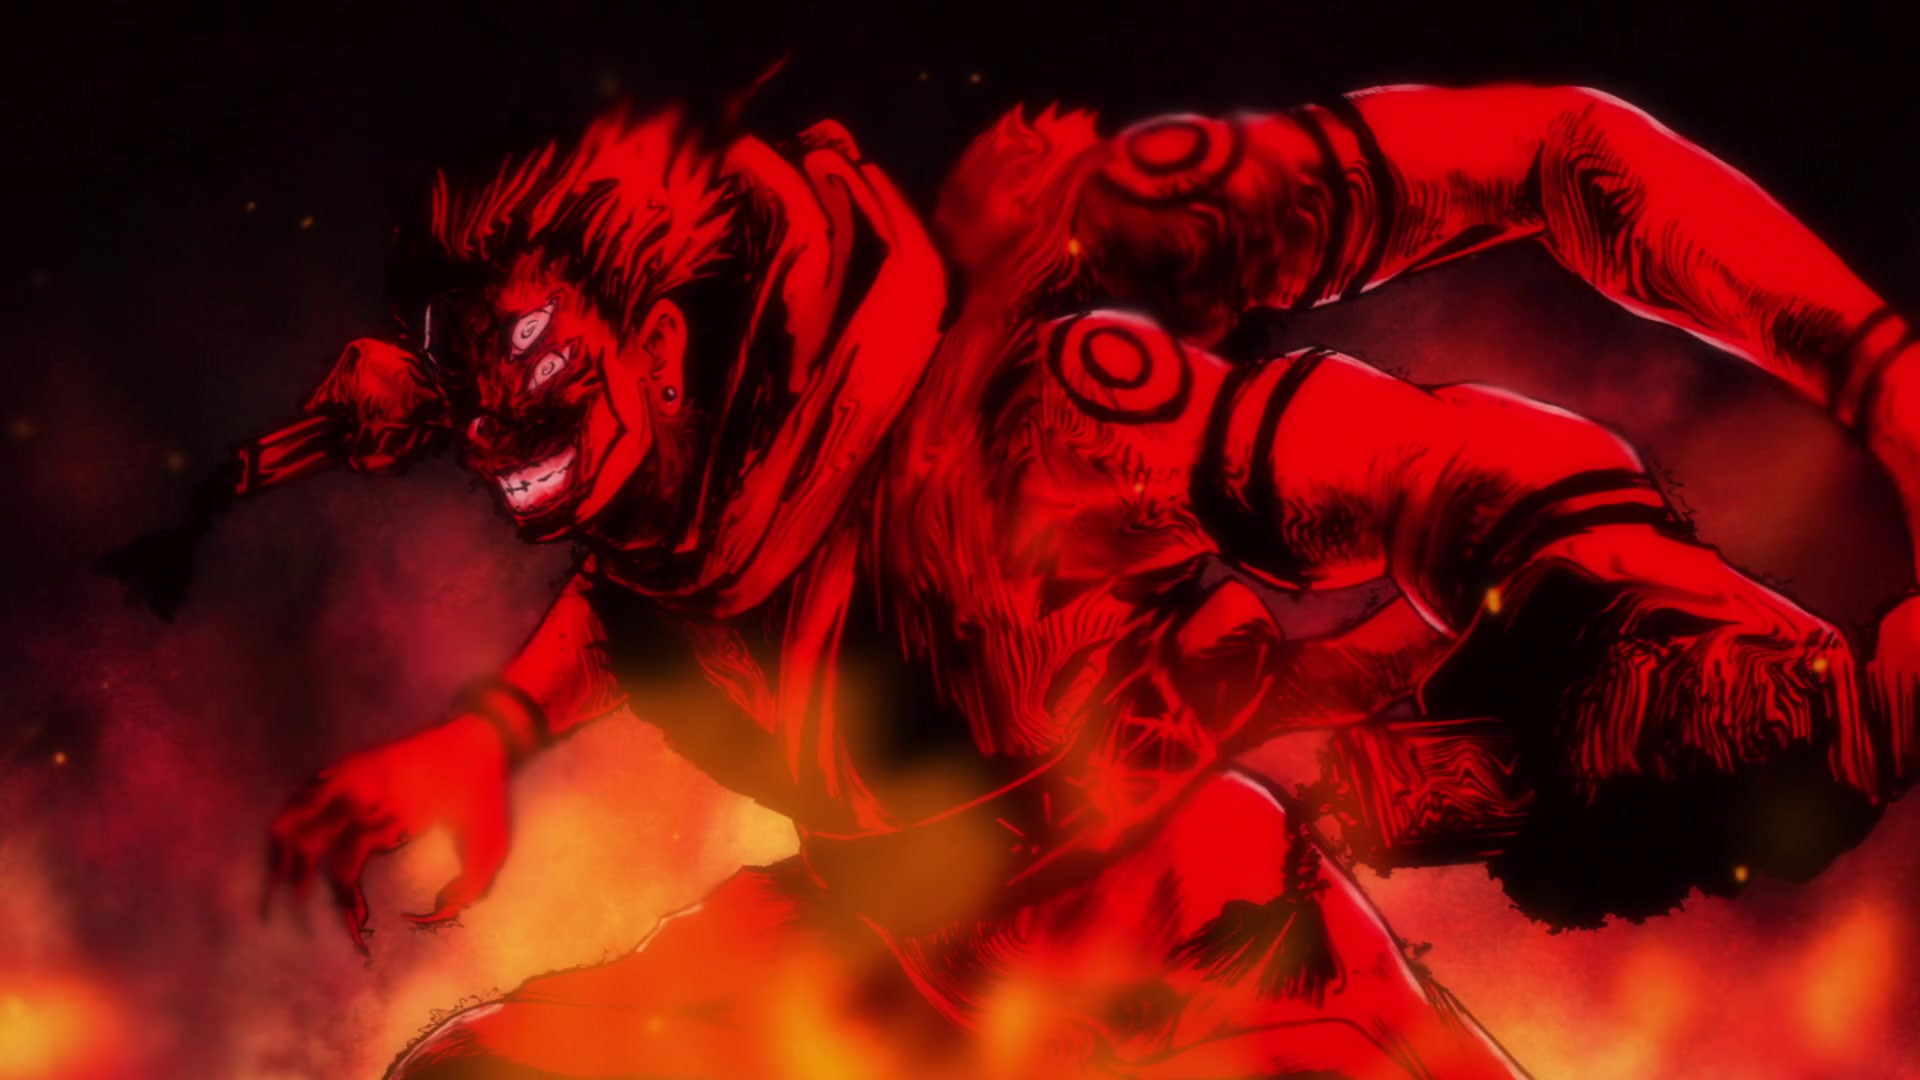 The real form of Sukuna from Jujutsu Kaisen.